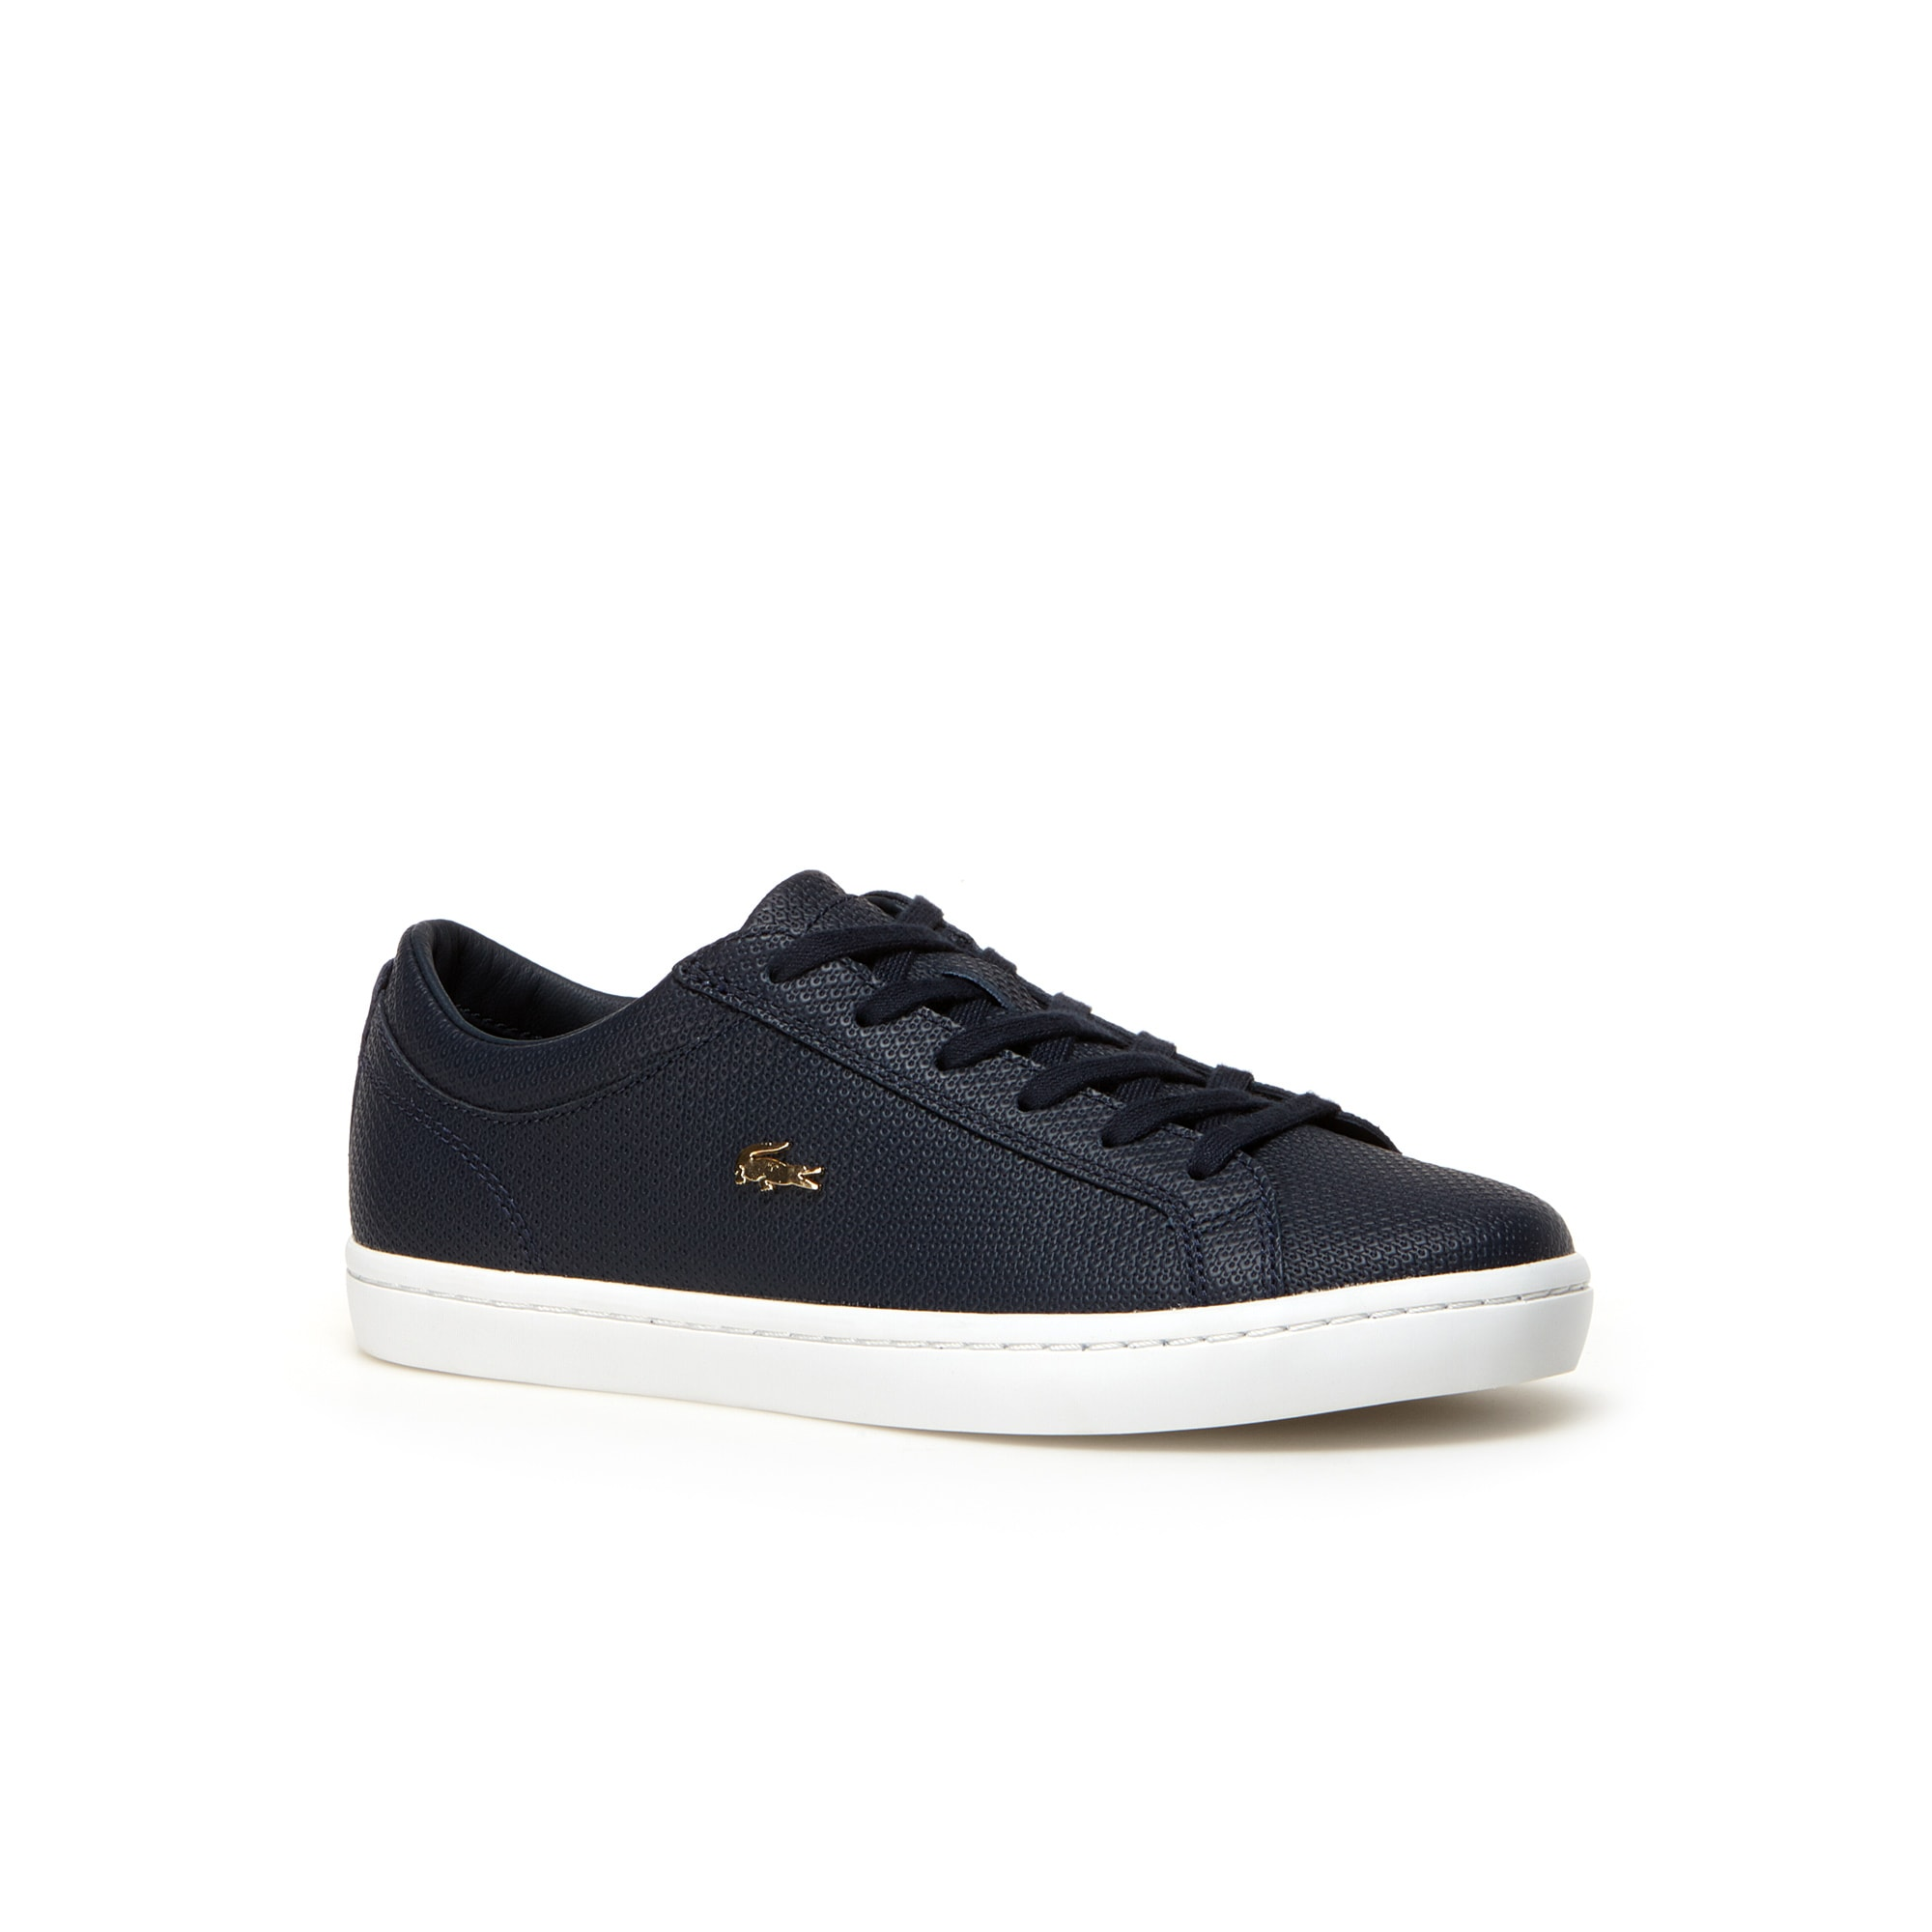 Women's Straightset Leather trainers With Golden Croc